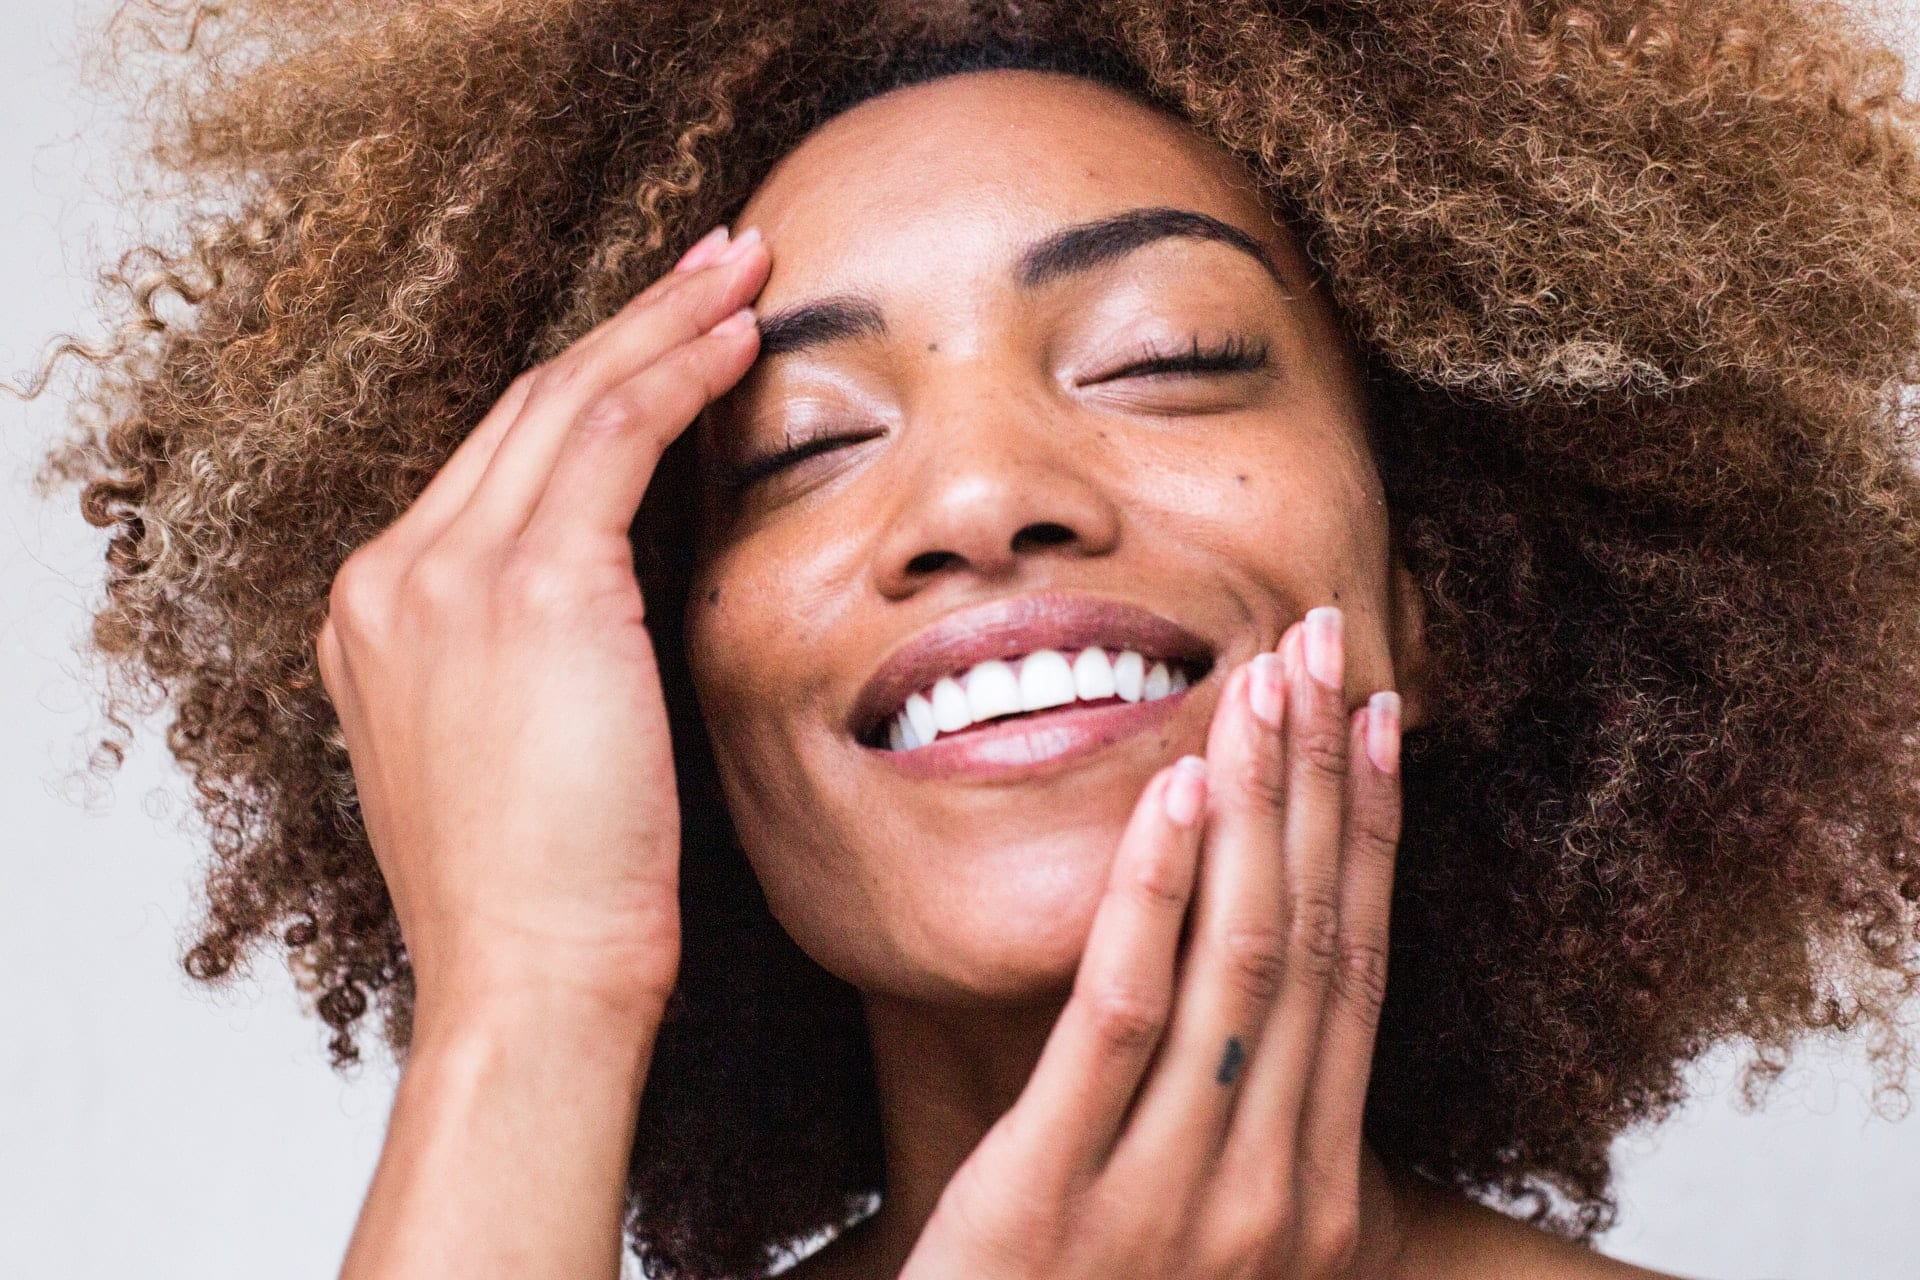 The best routine for dry skin